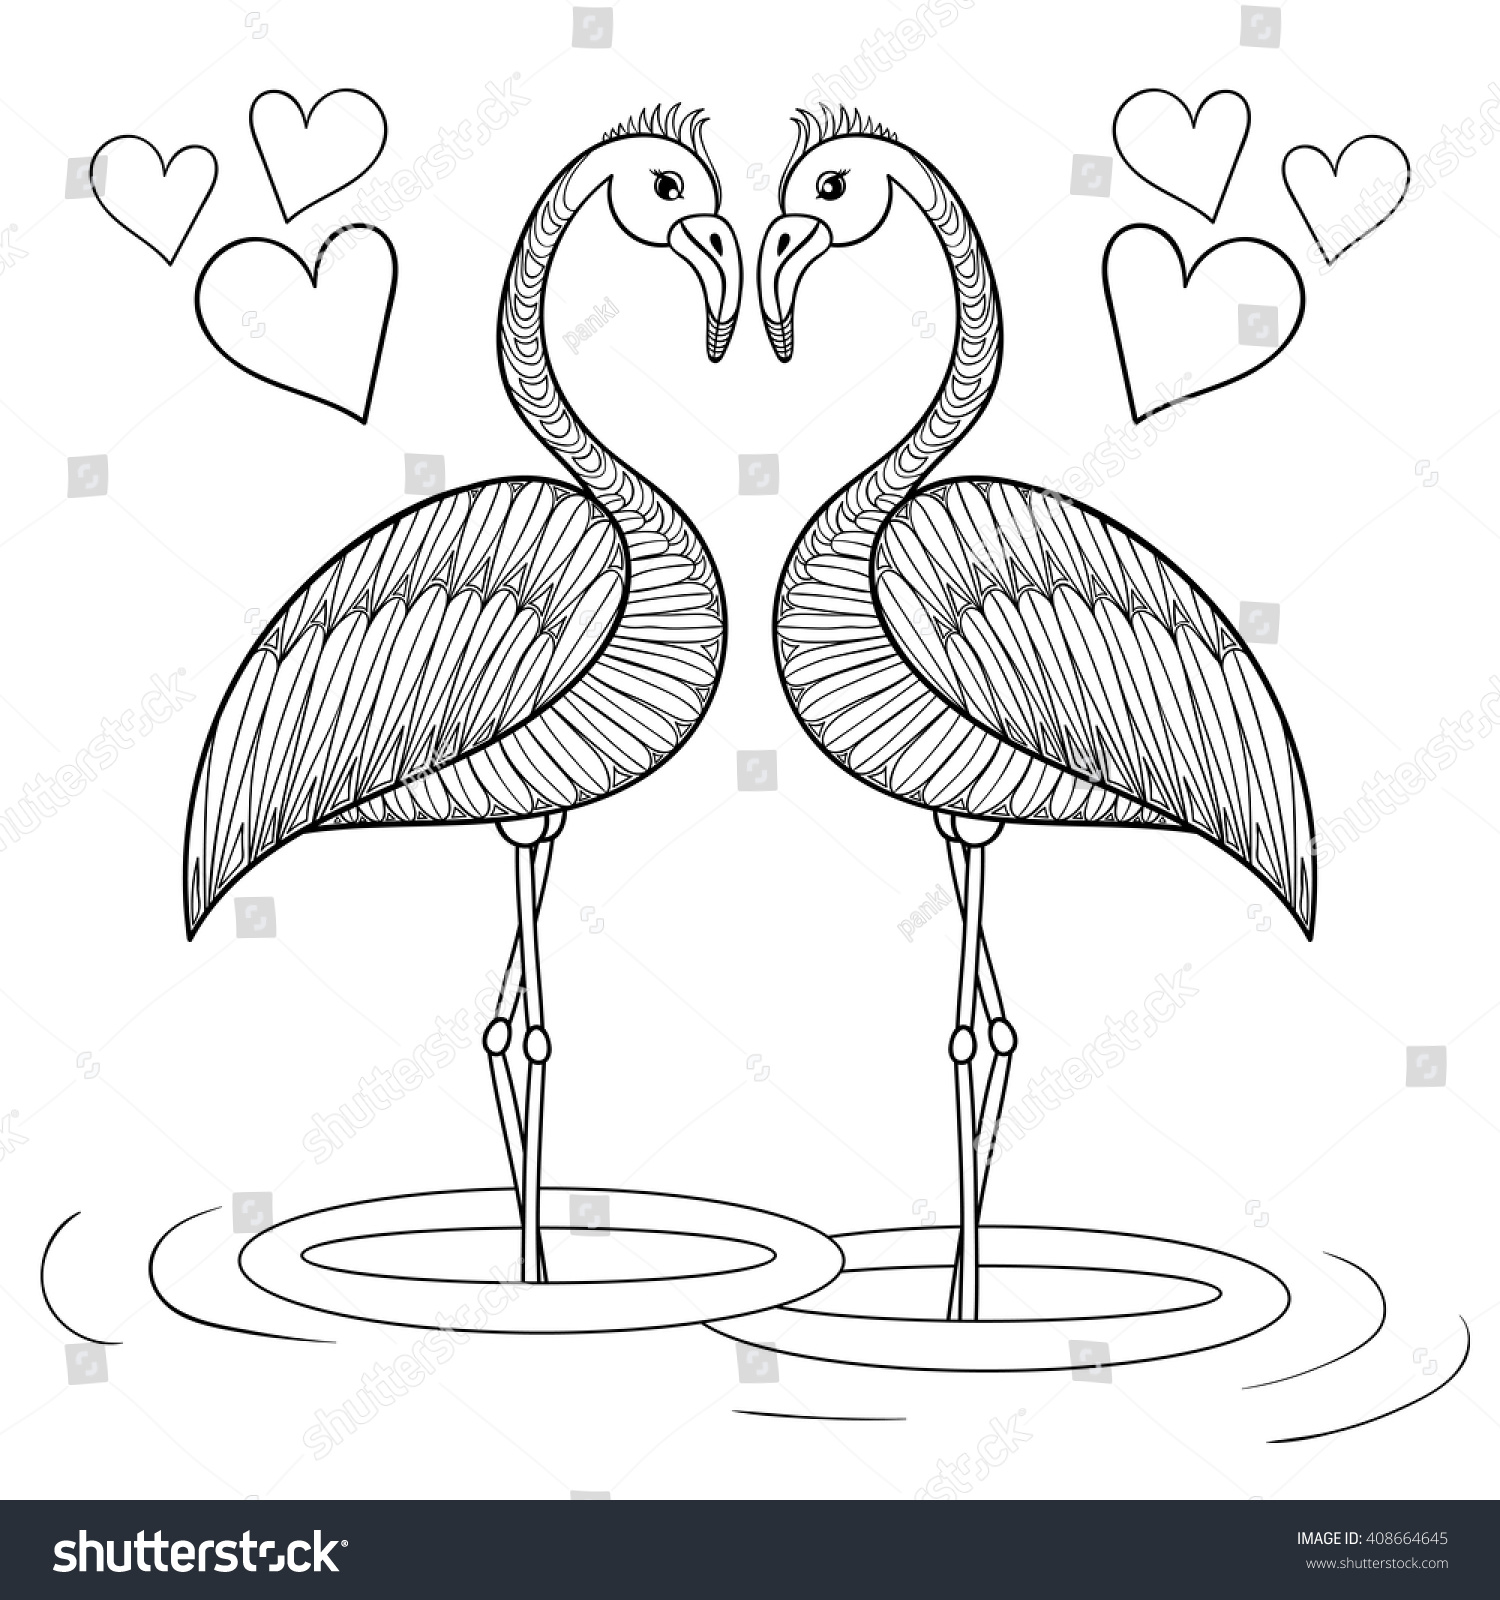 Flamingo Coloring Page Best Royaltyfree Coloring Page With Flamingo Birds In… 408664645 Inspiration Design